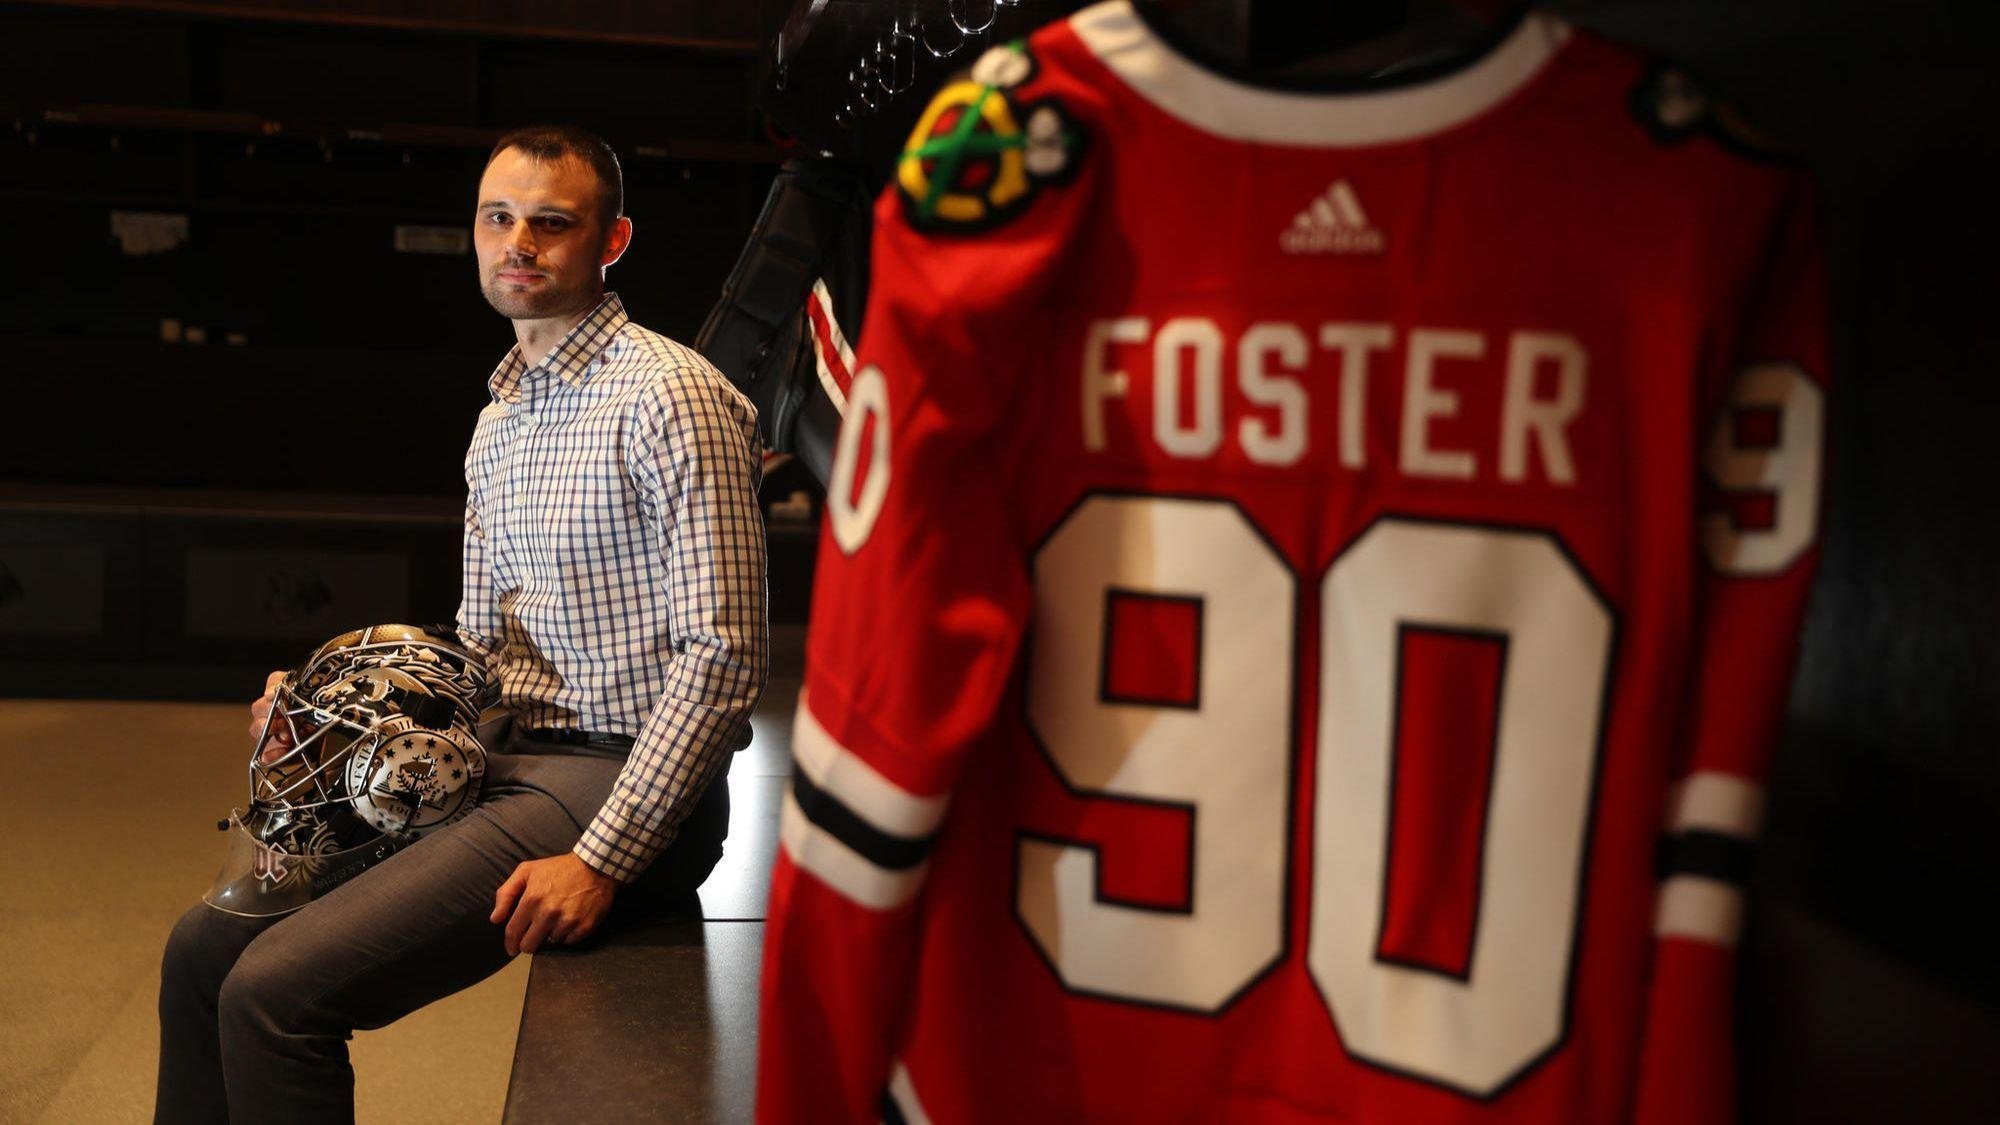 Scott Foster — accountant who for one night starred in goal for the  Blackhawks — opens up for first time about his  unbelievable moment  83baf8b8c64